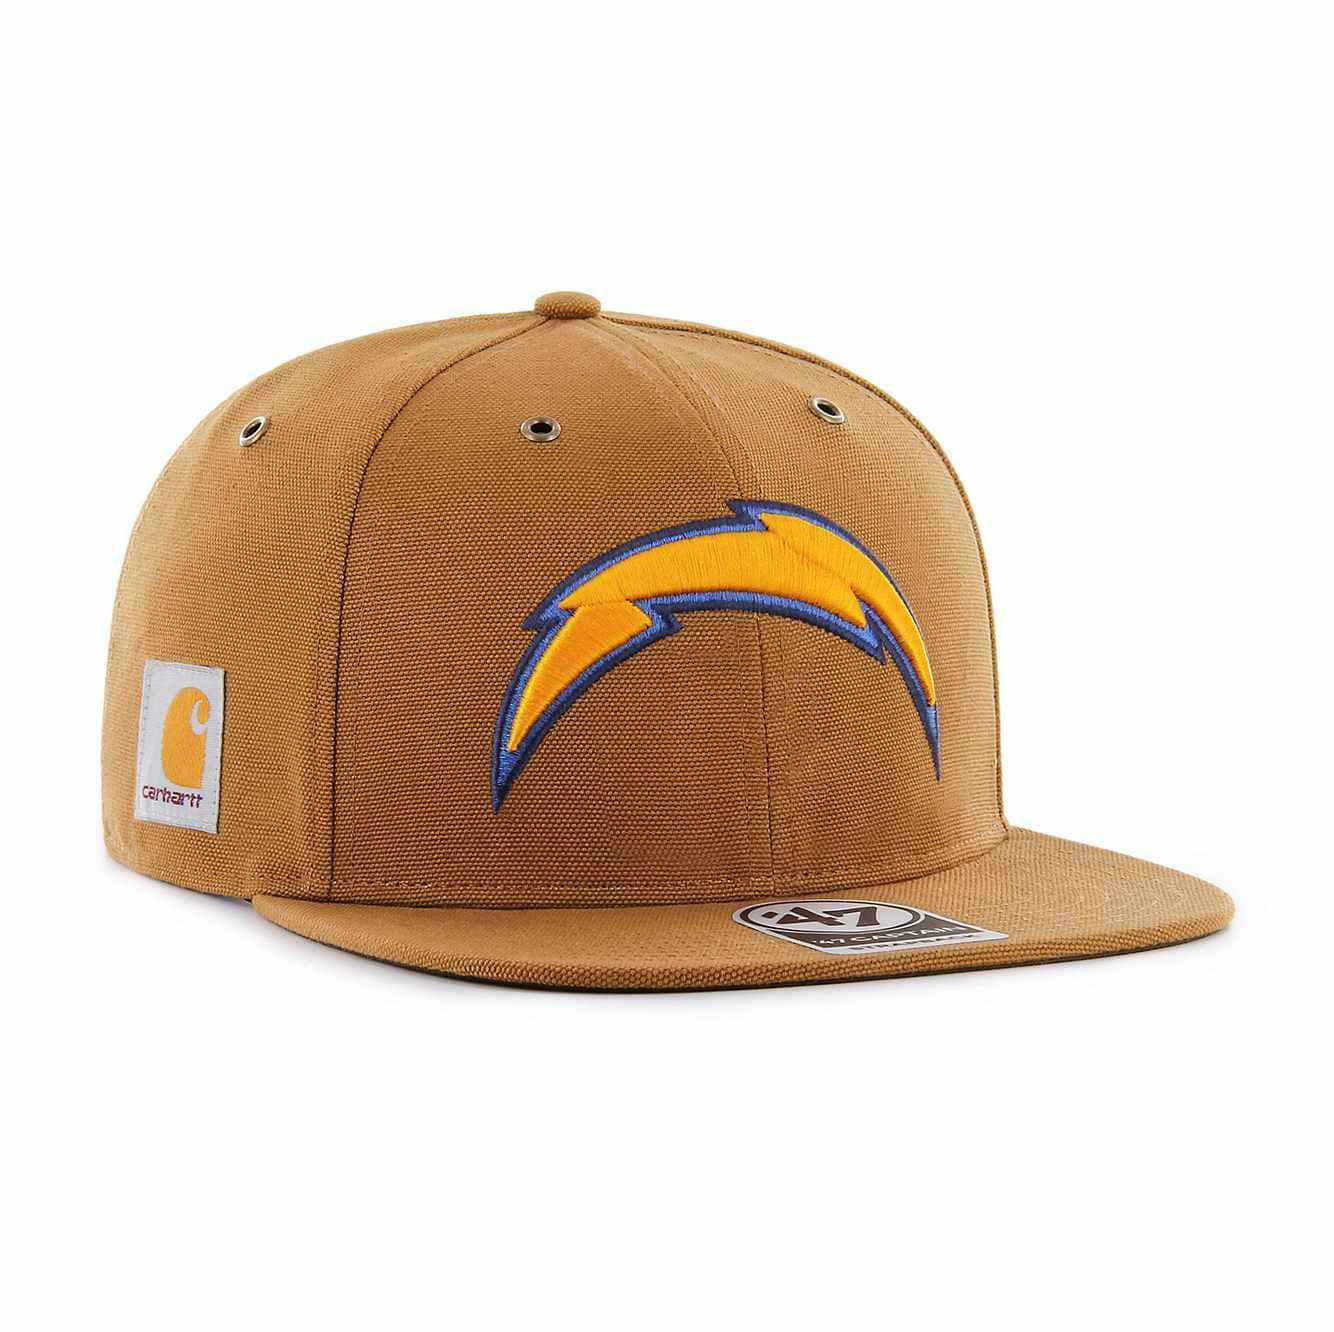 Picture of Los Angeles Chargers Carhartt X '47 Captain in Carhartt Brown